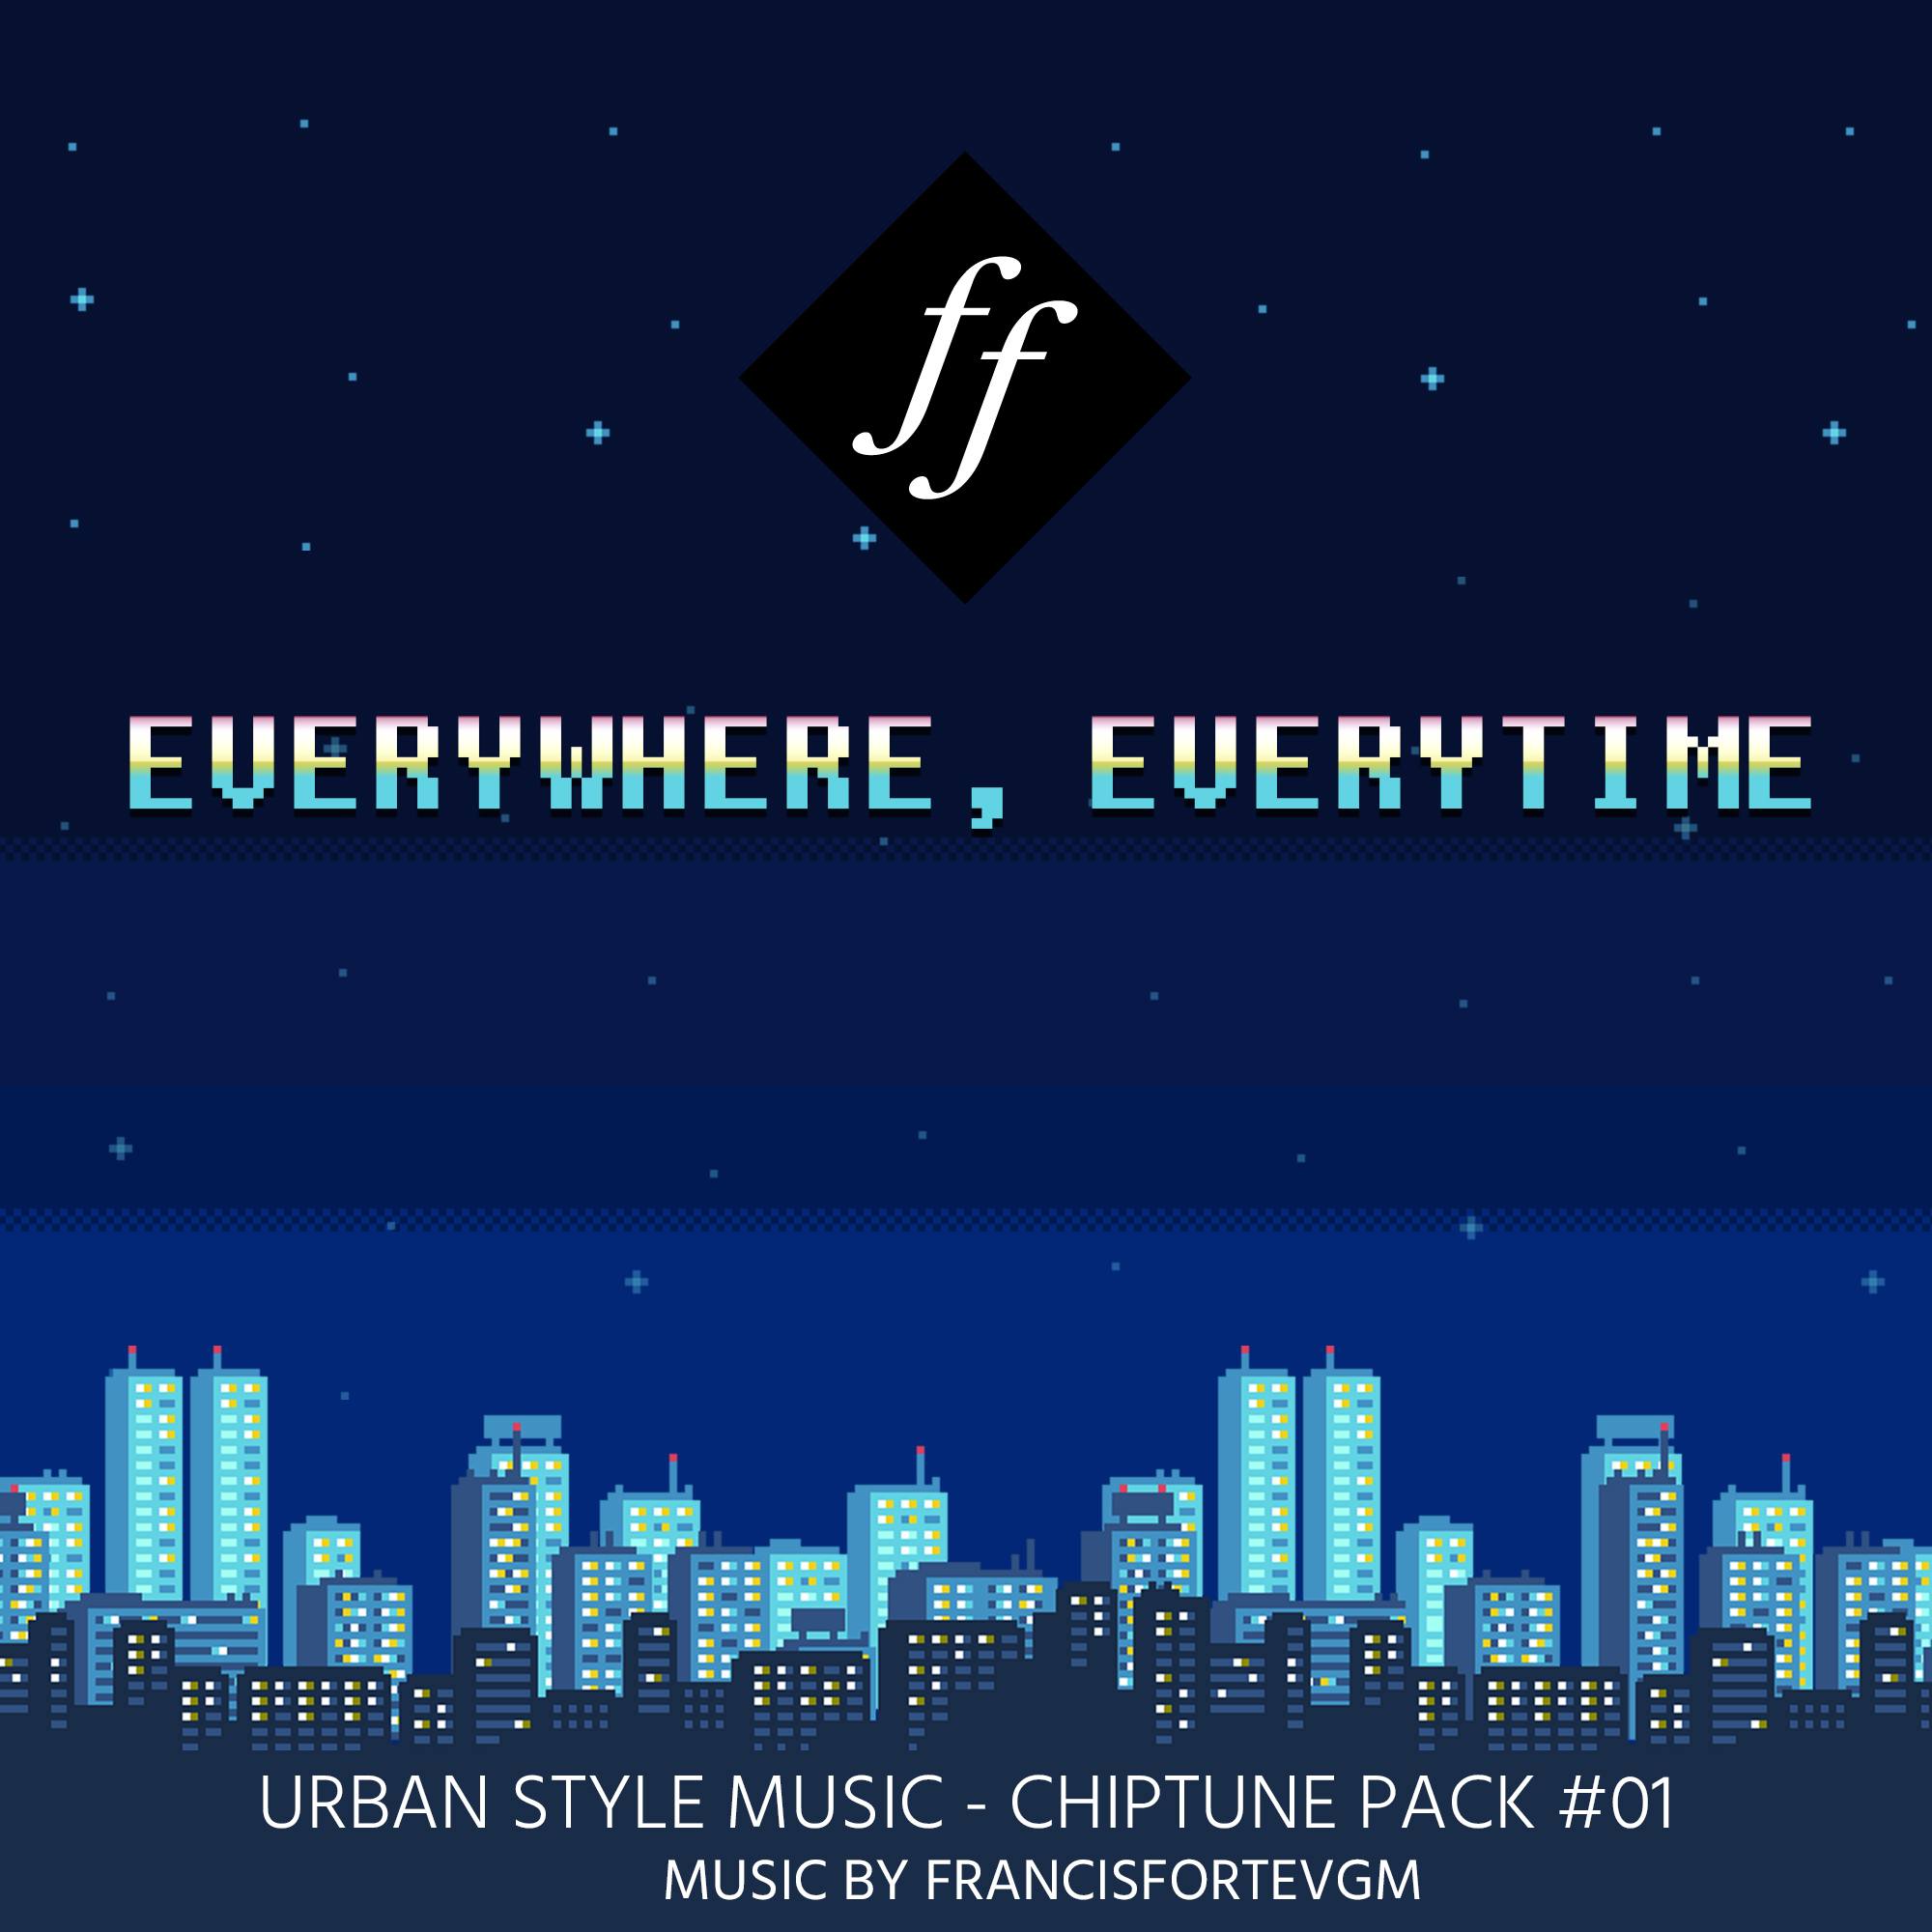 RPG Maker VX Ace - Everywhere, Everytime Music Pack screenshot